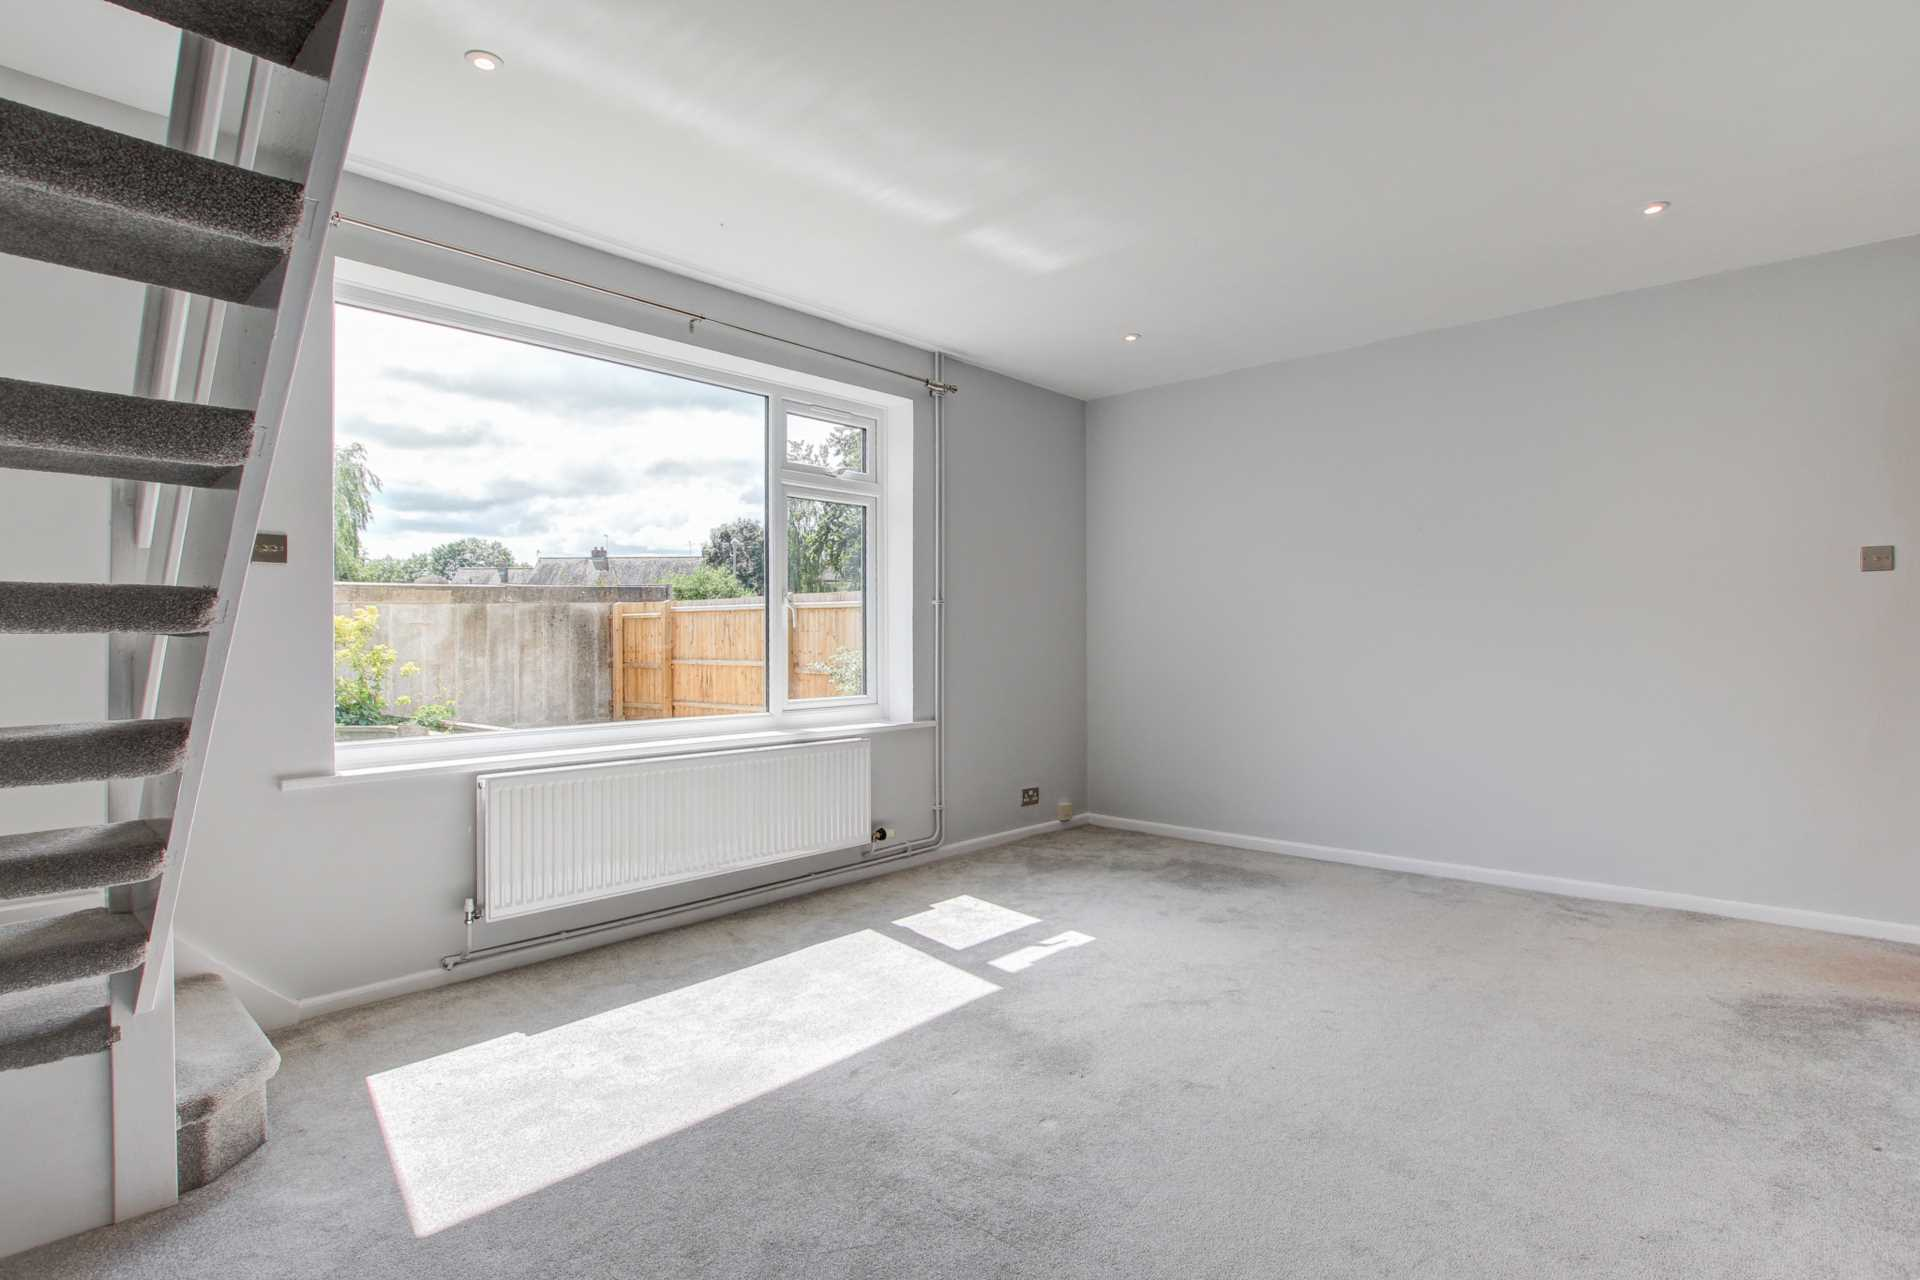 2 bed end of terrace house to rent in Fishers Close, Blandford Forum, Blandford Forum  - Property Image 4